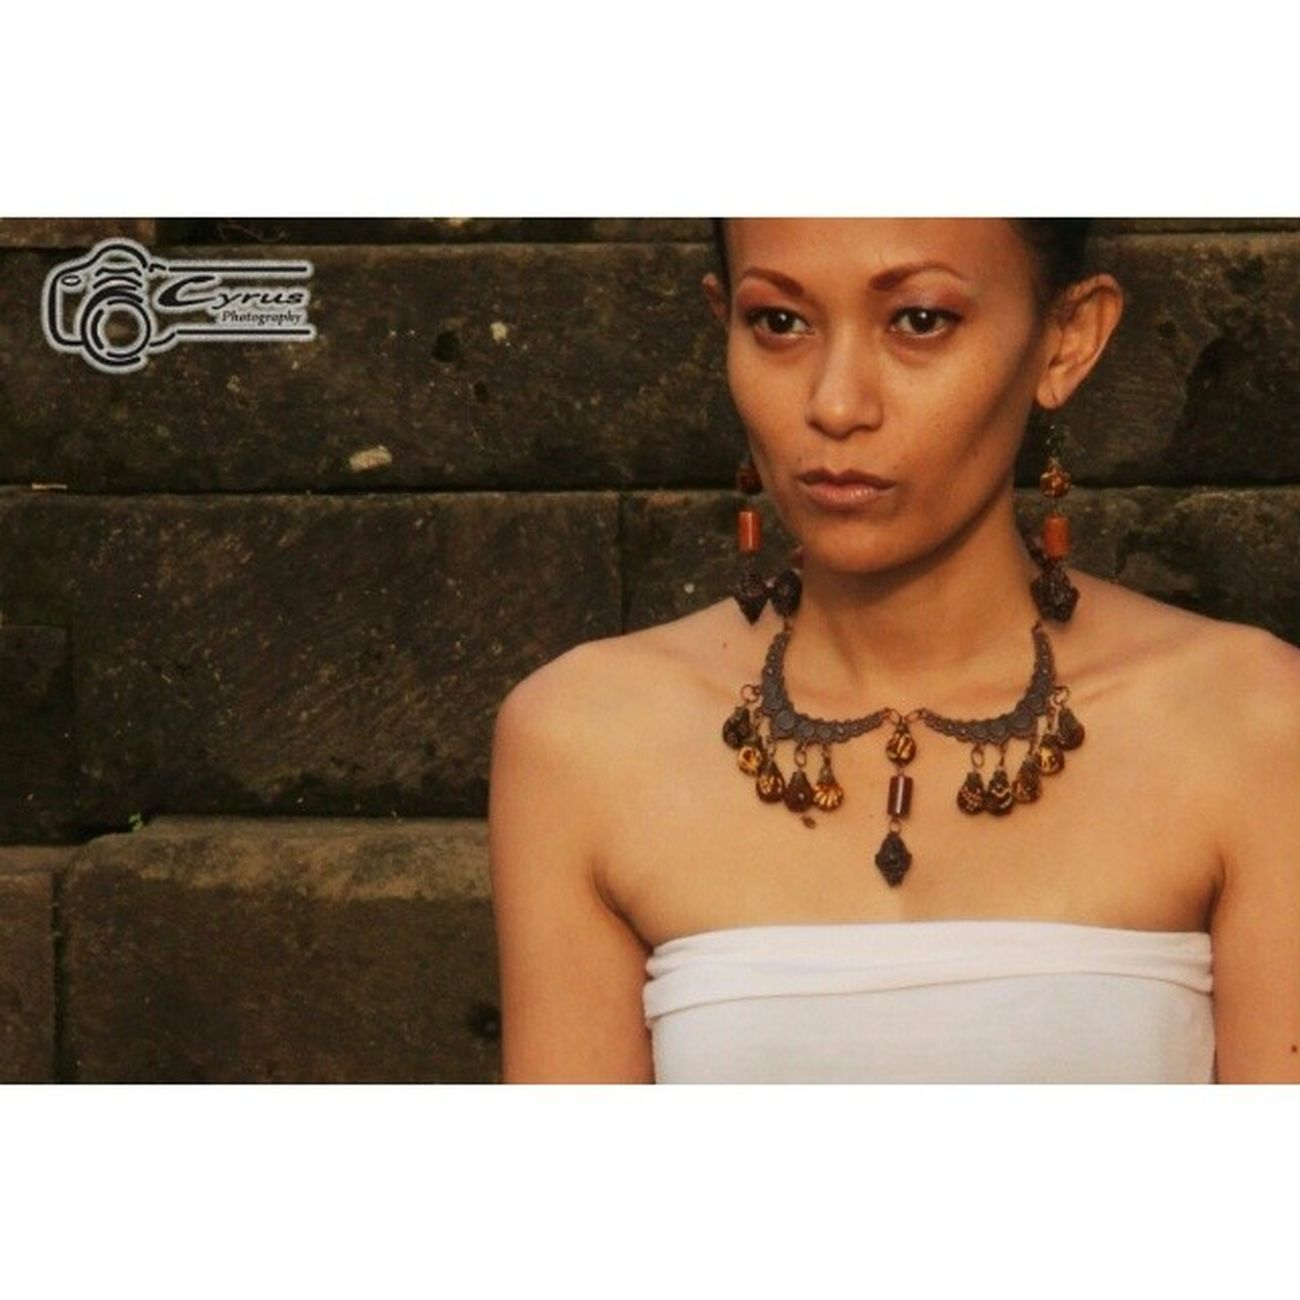 CyrusPhotograph Kidaltemple Radhaaccessories Indonesianethnic necklace instafashion